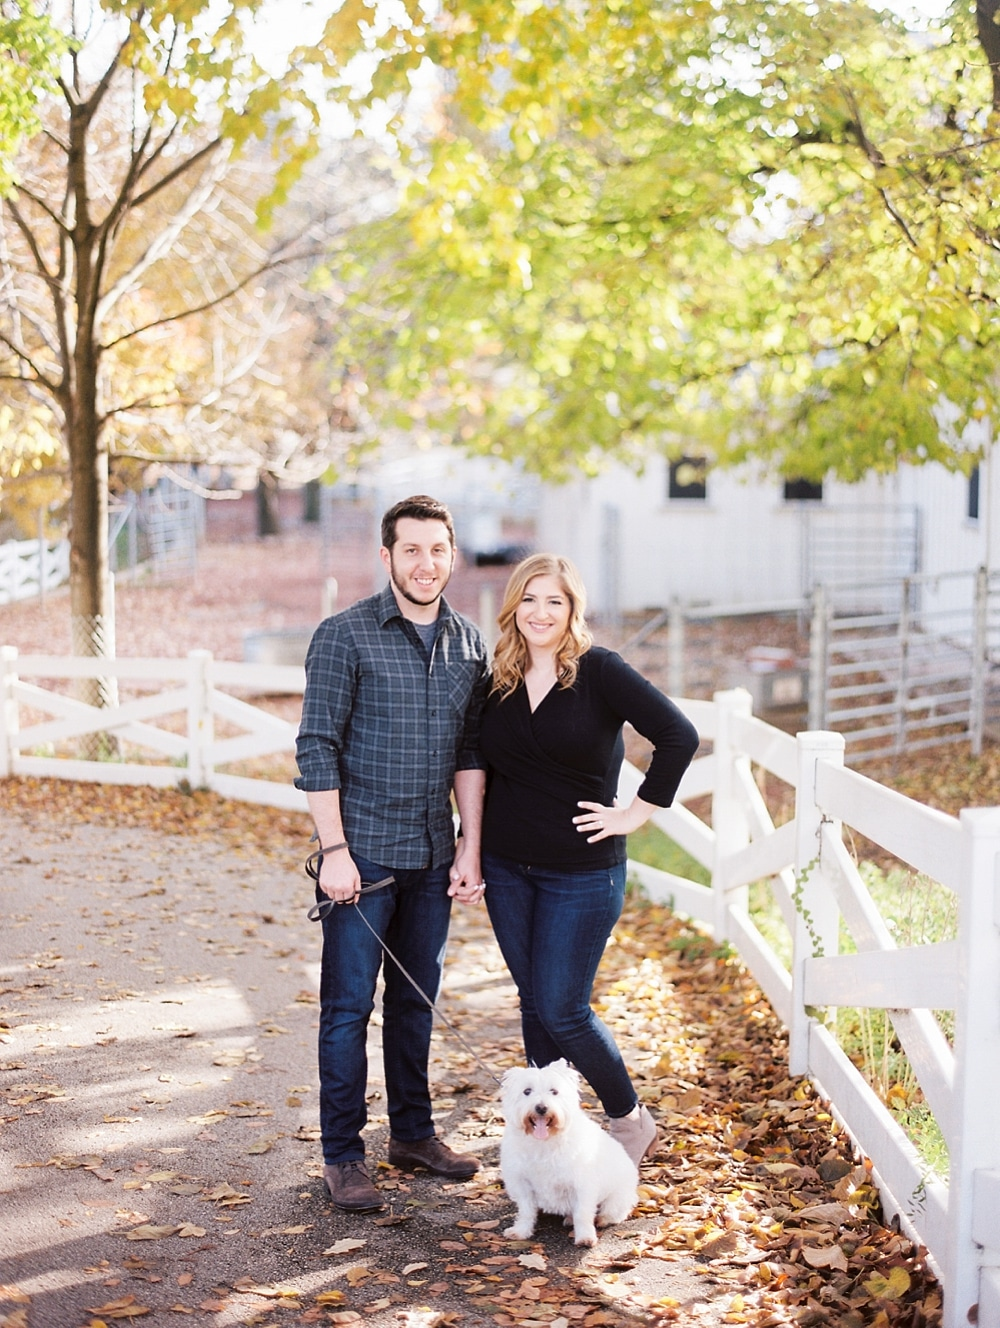 Kristin-La-Voie-Photography-Chicago-Wedding-Photographer-South-Pond-Dog-Engagement-Lincoln-Park-1-2